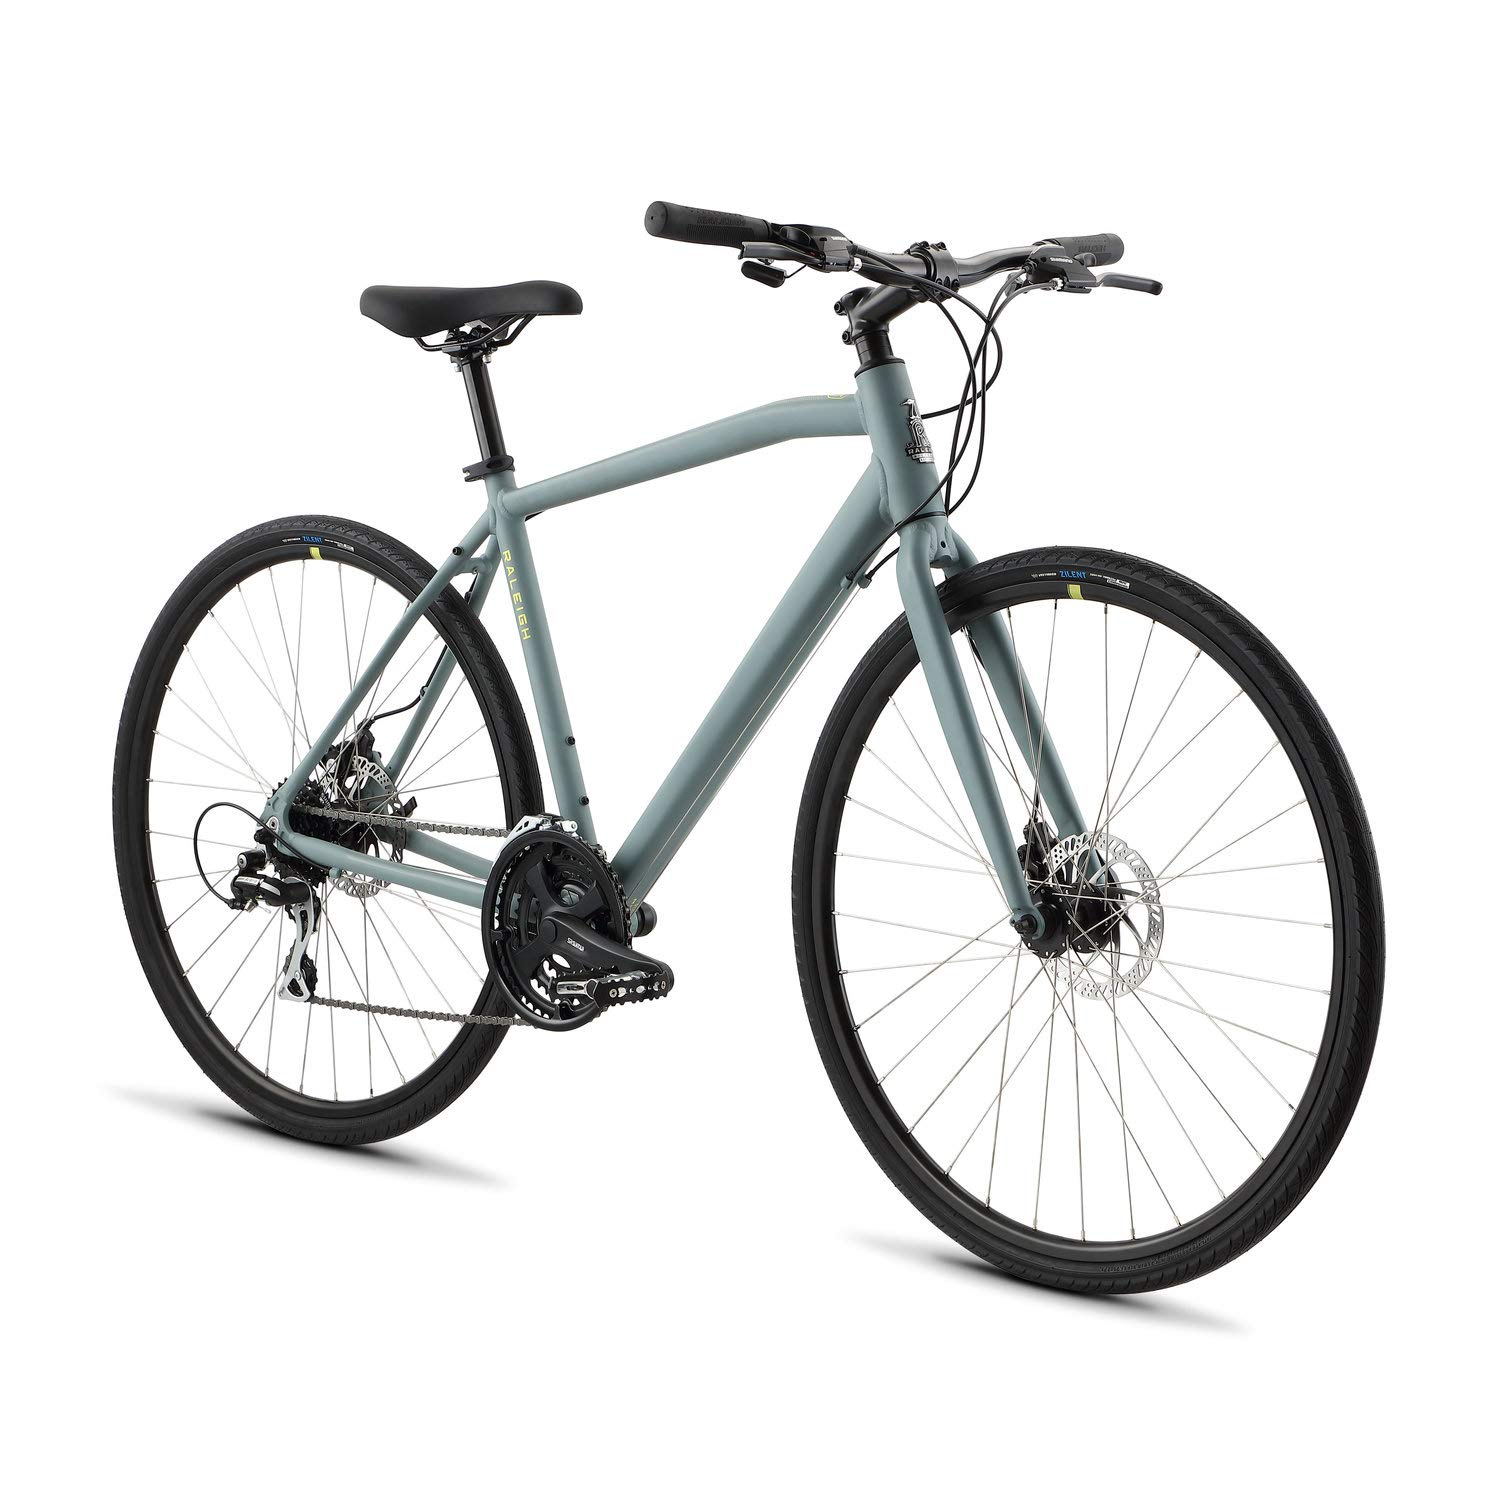 Raleigh Bicycles Cadent 2 Fitness Hybrid Bike